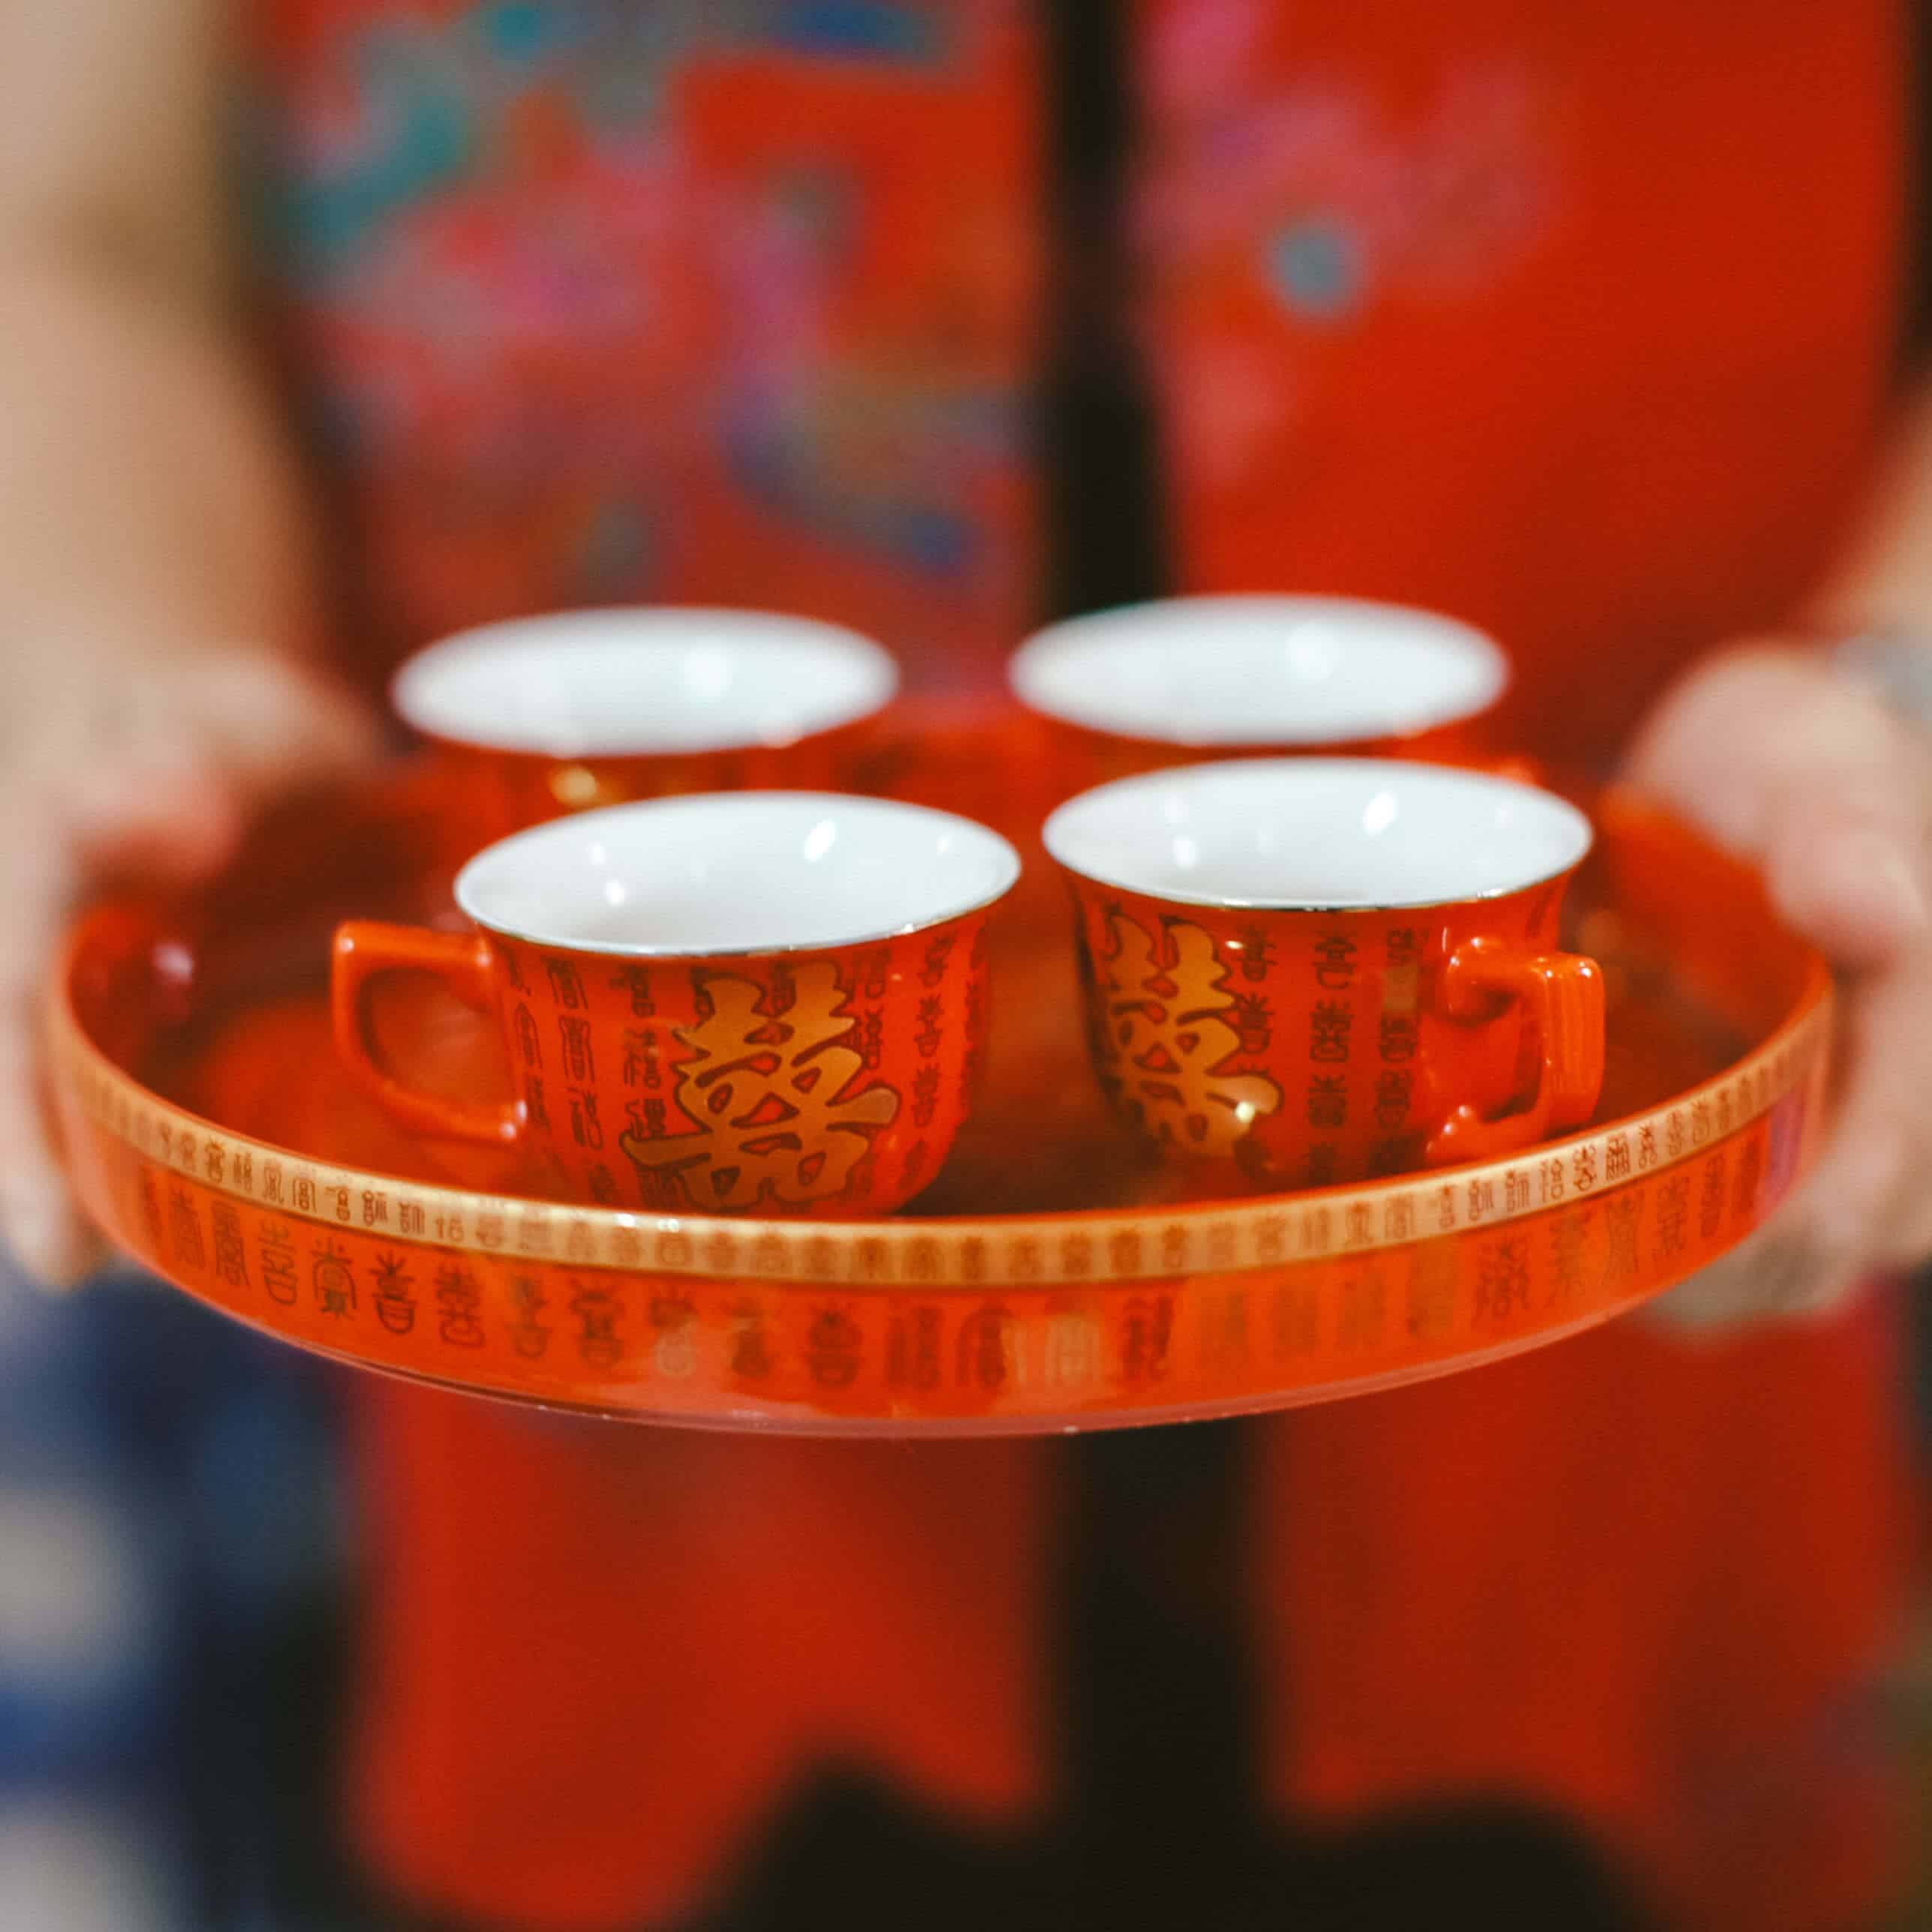 Malaysia Classic Vintage Chinese Wedding Kuala Lumpur Cliff Choong Photography Cross-culture Indonadian Malaysian Yat Ming & Mega Red Cup